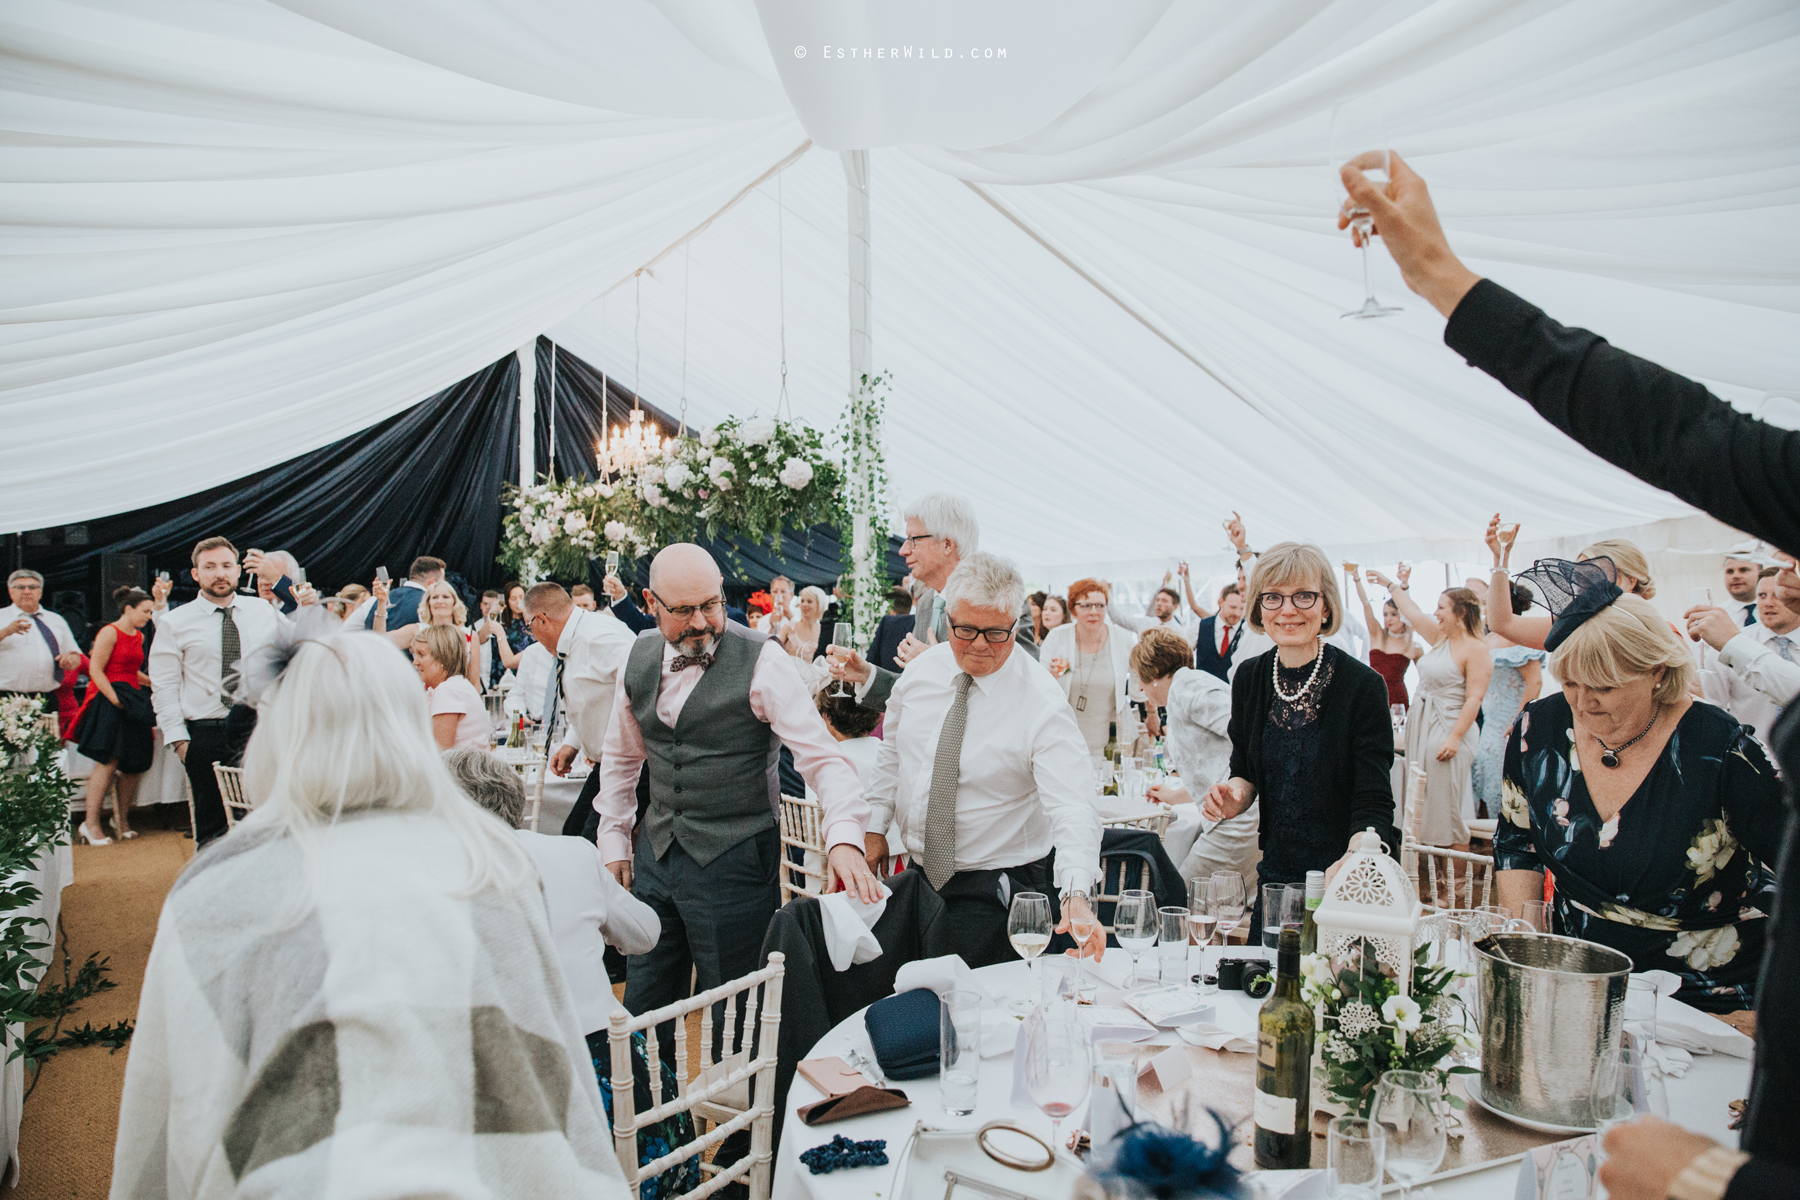 Wootton_Wedding_Copyright_Esther_Wild_Photographer_IMG_3005.jpg